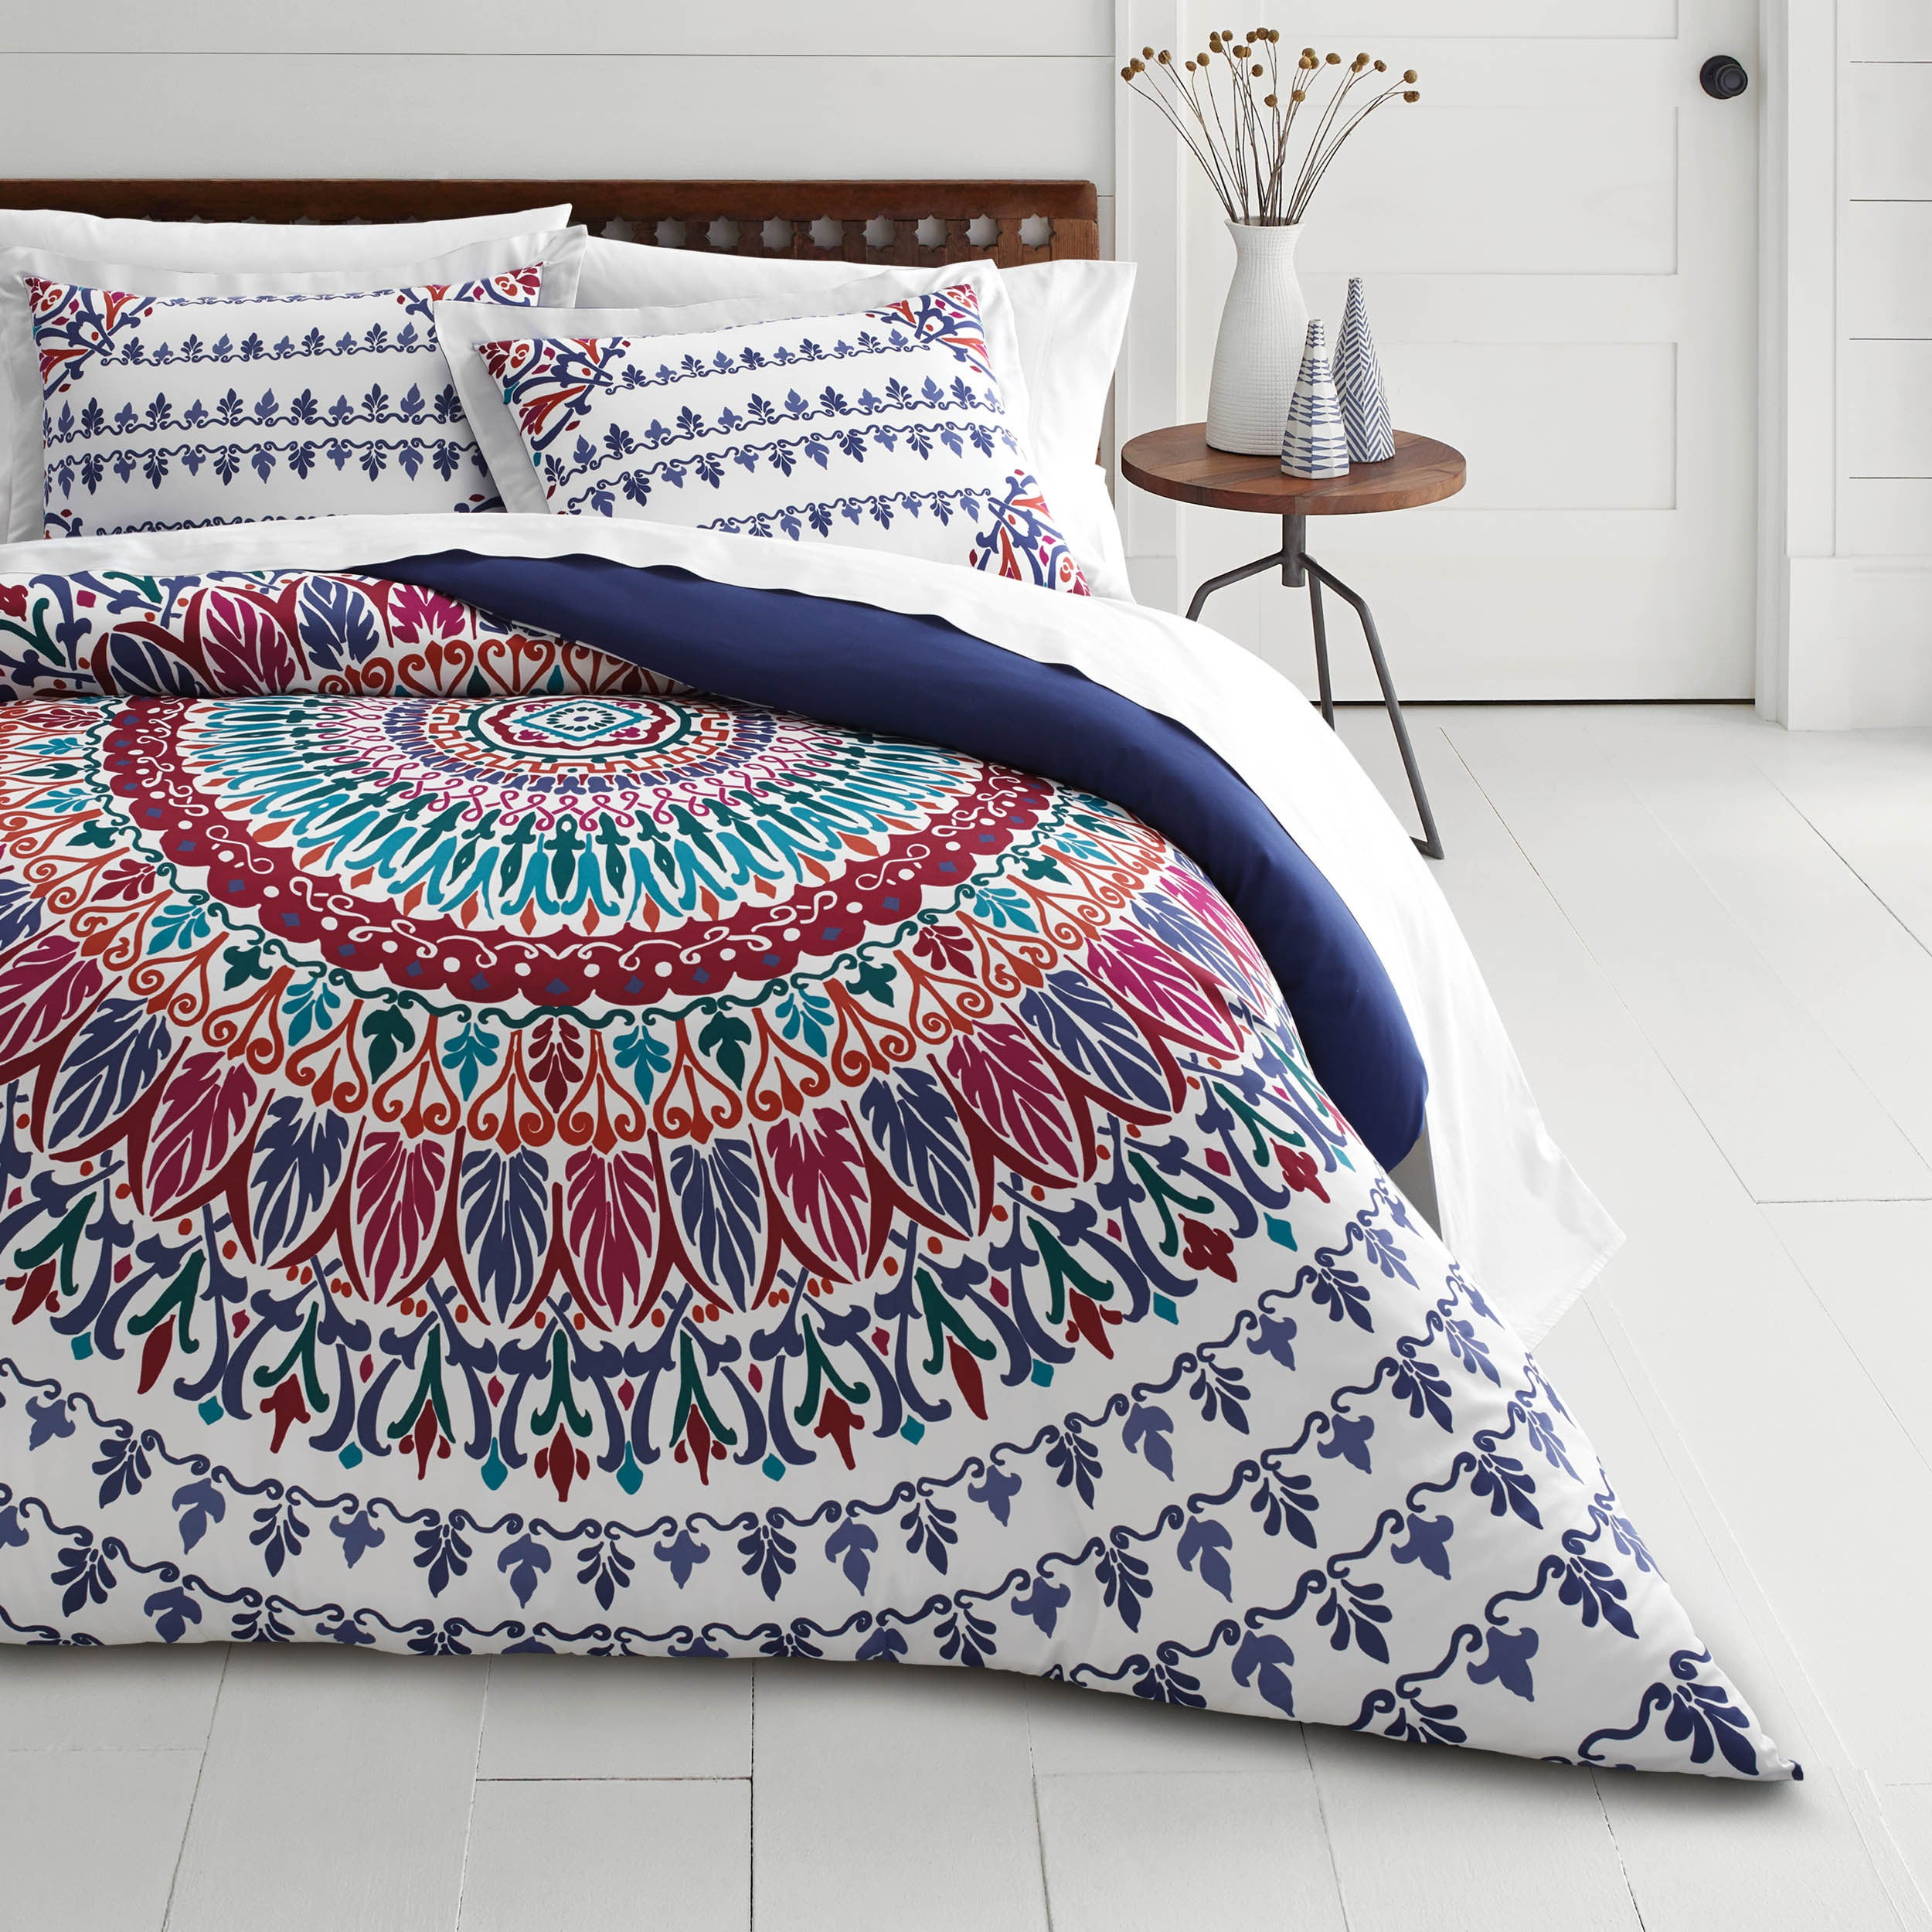 cover medallion bedrooms pin room duvet paisley and